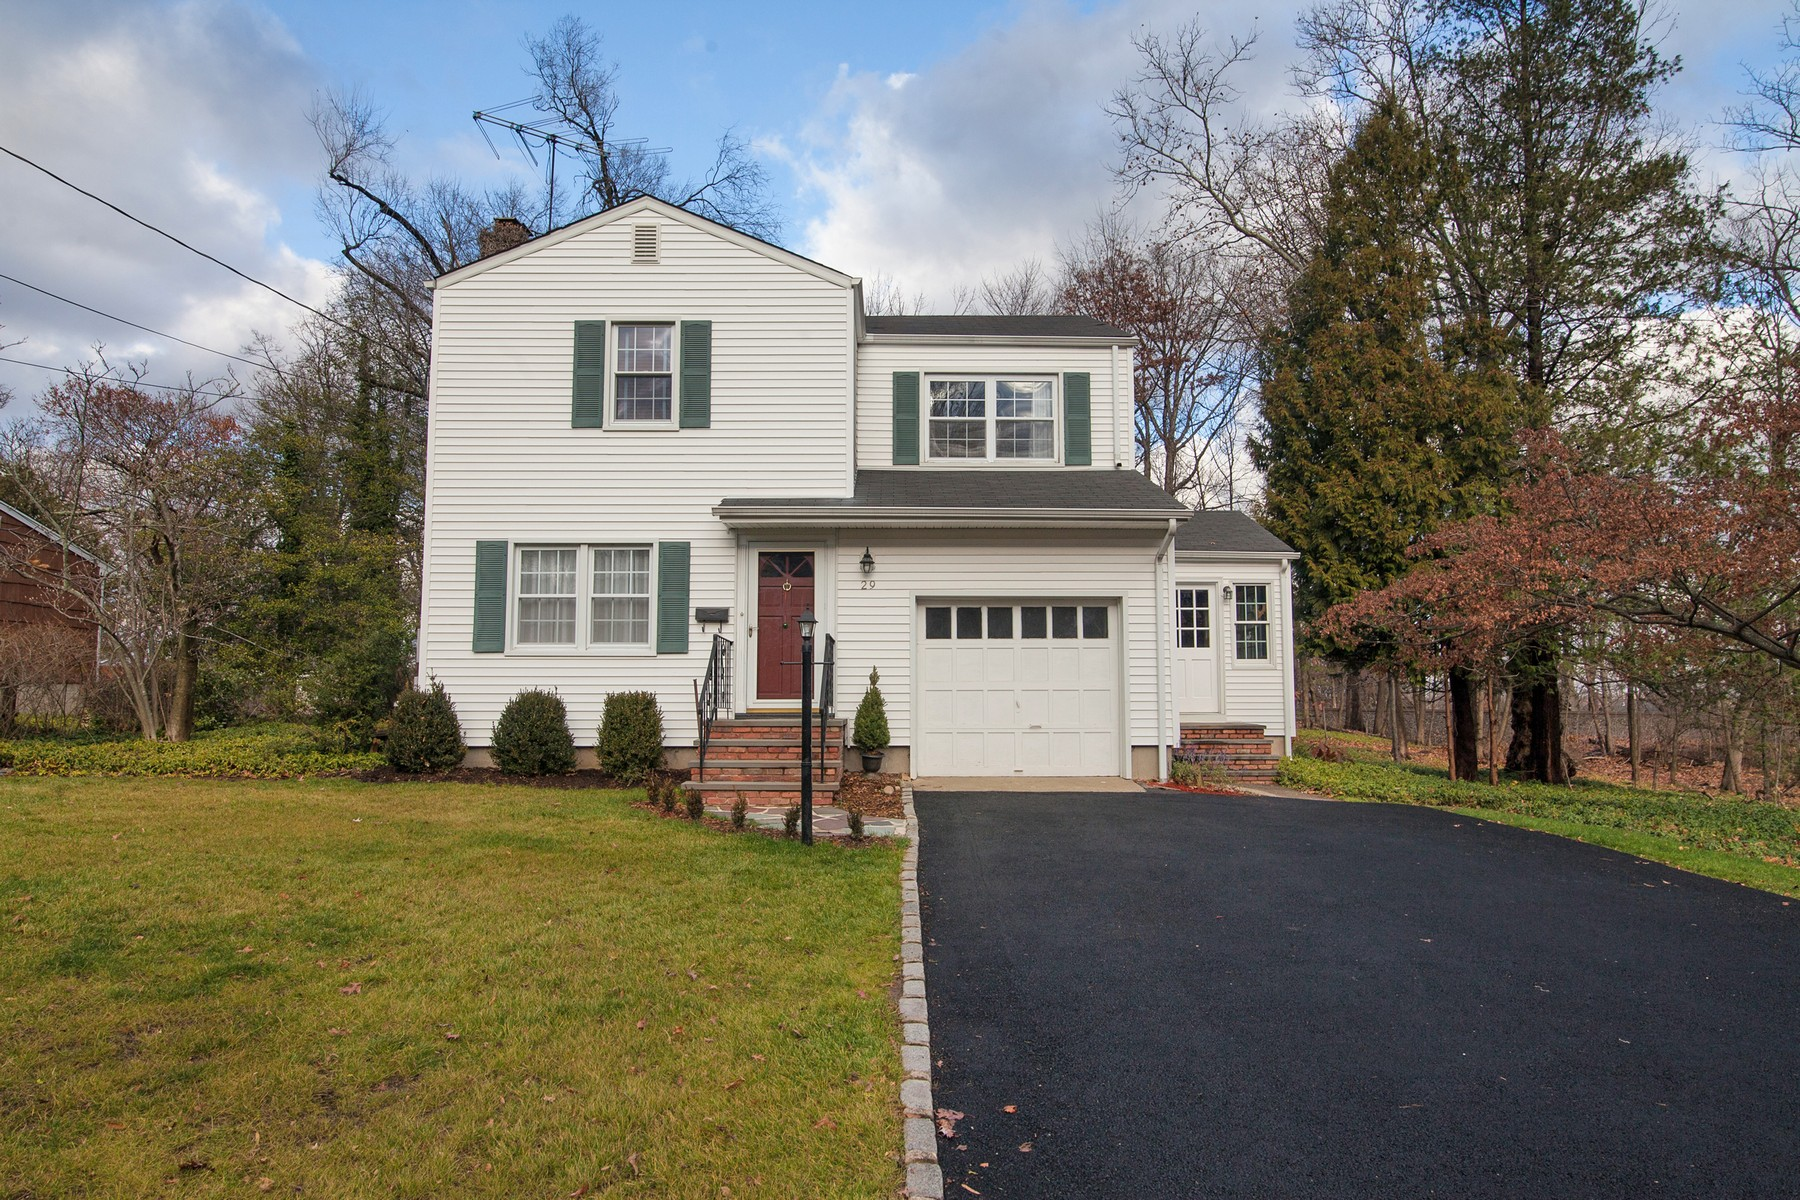 Single Family Home for Sale at Charming Colonial 29 Fairwood Road Madison, New Jersey 07940 United States